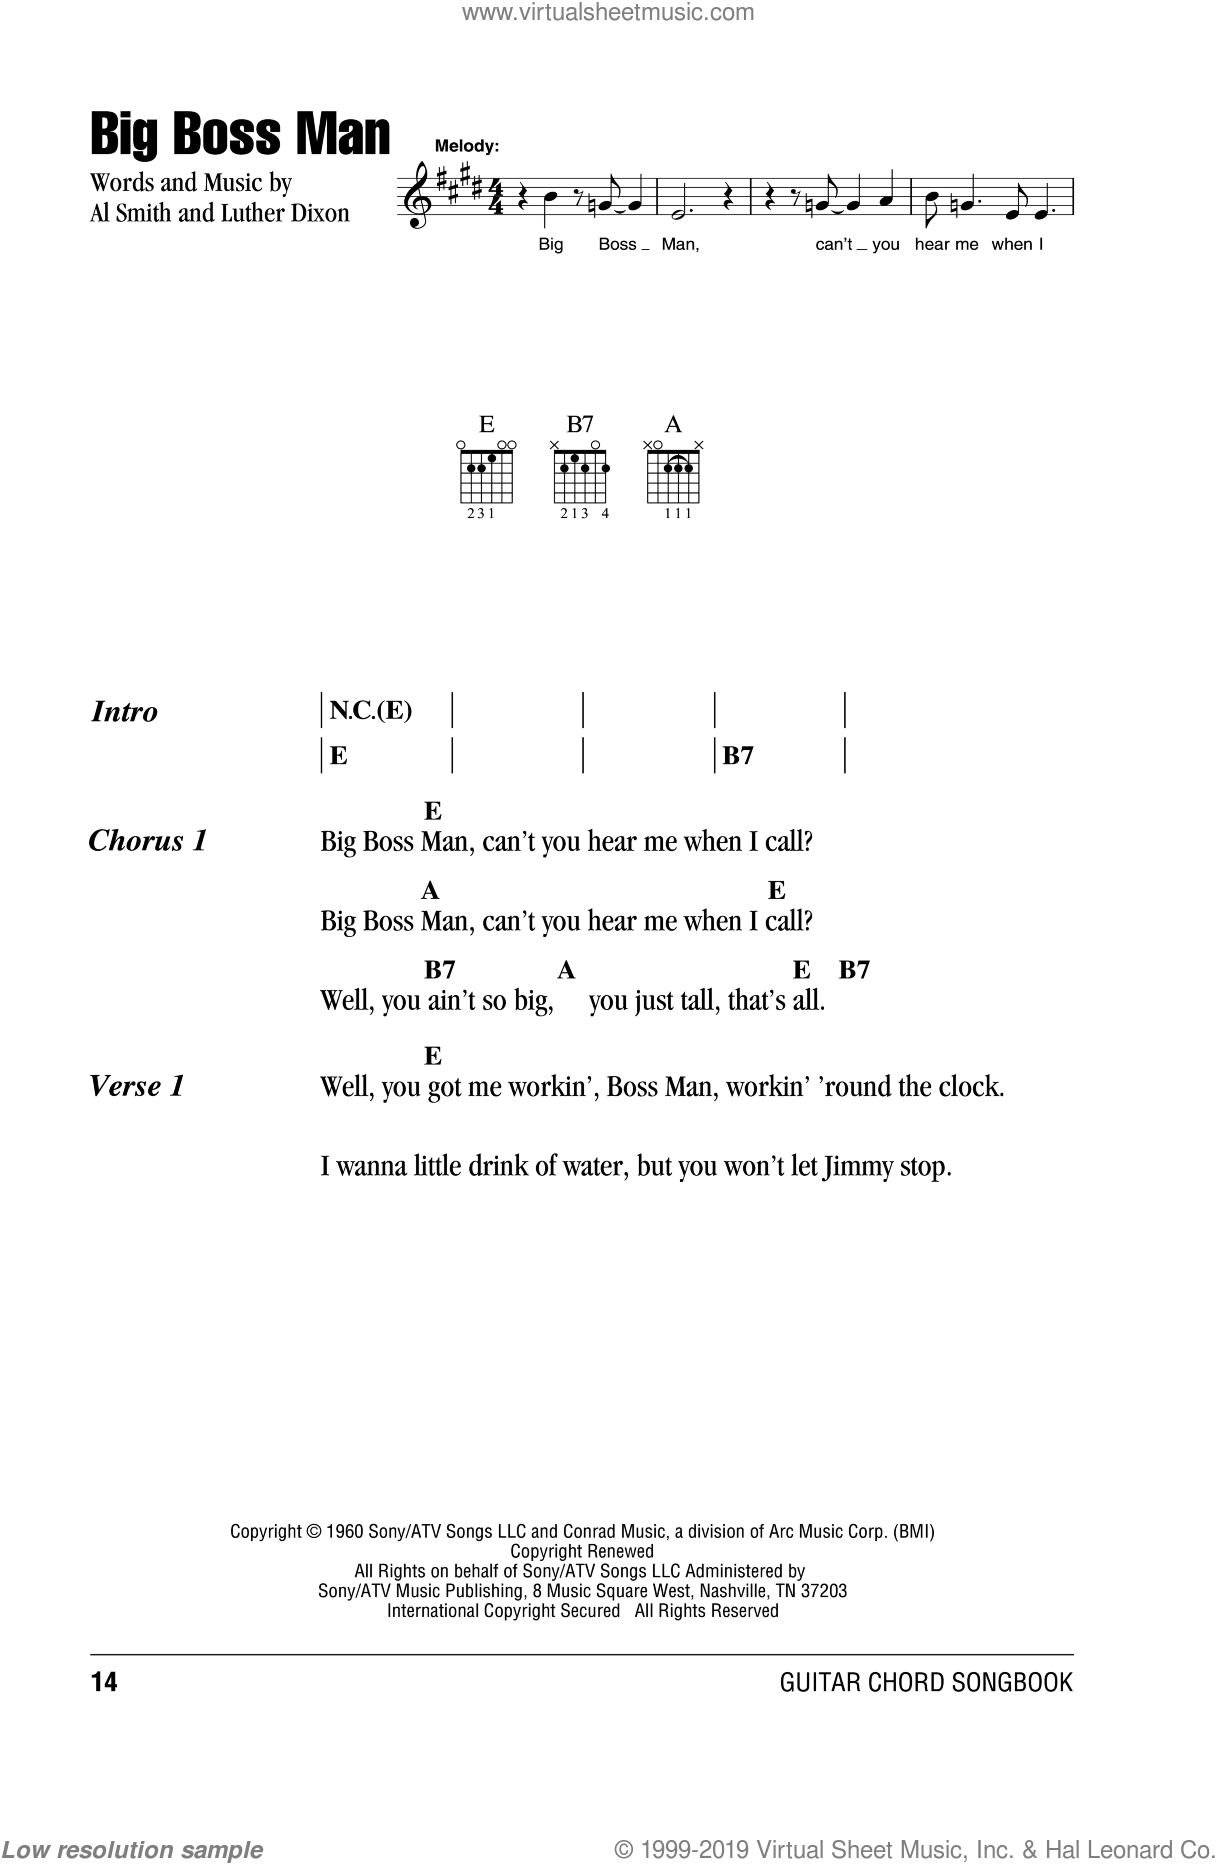 Big Boss Man sheet music for guitar (chords) by Luther Dixon